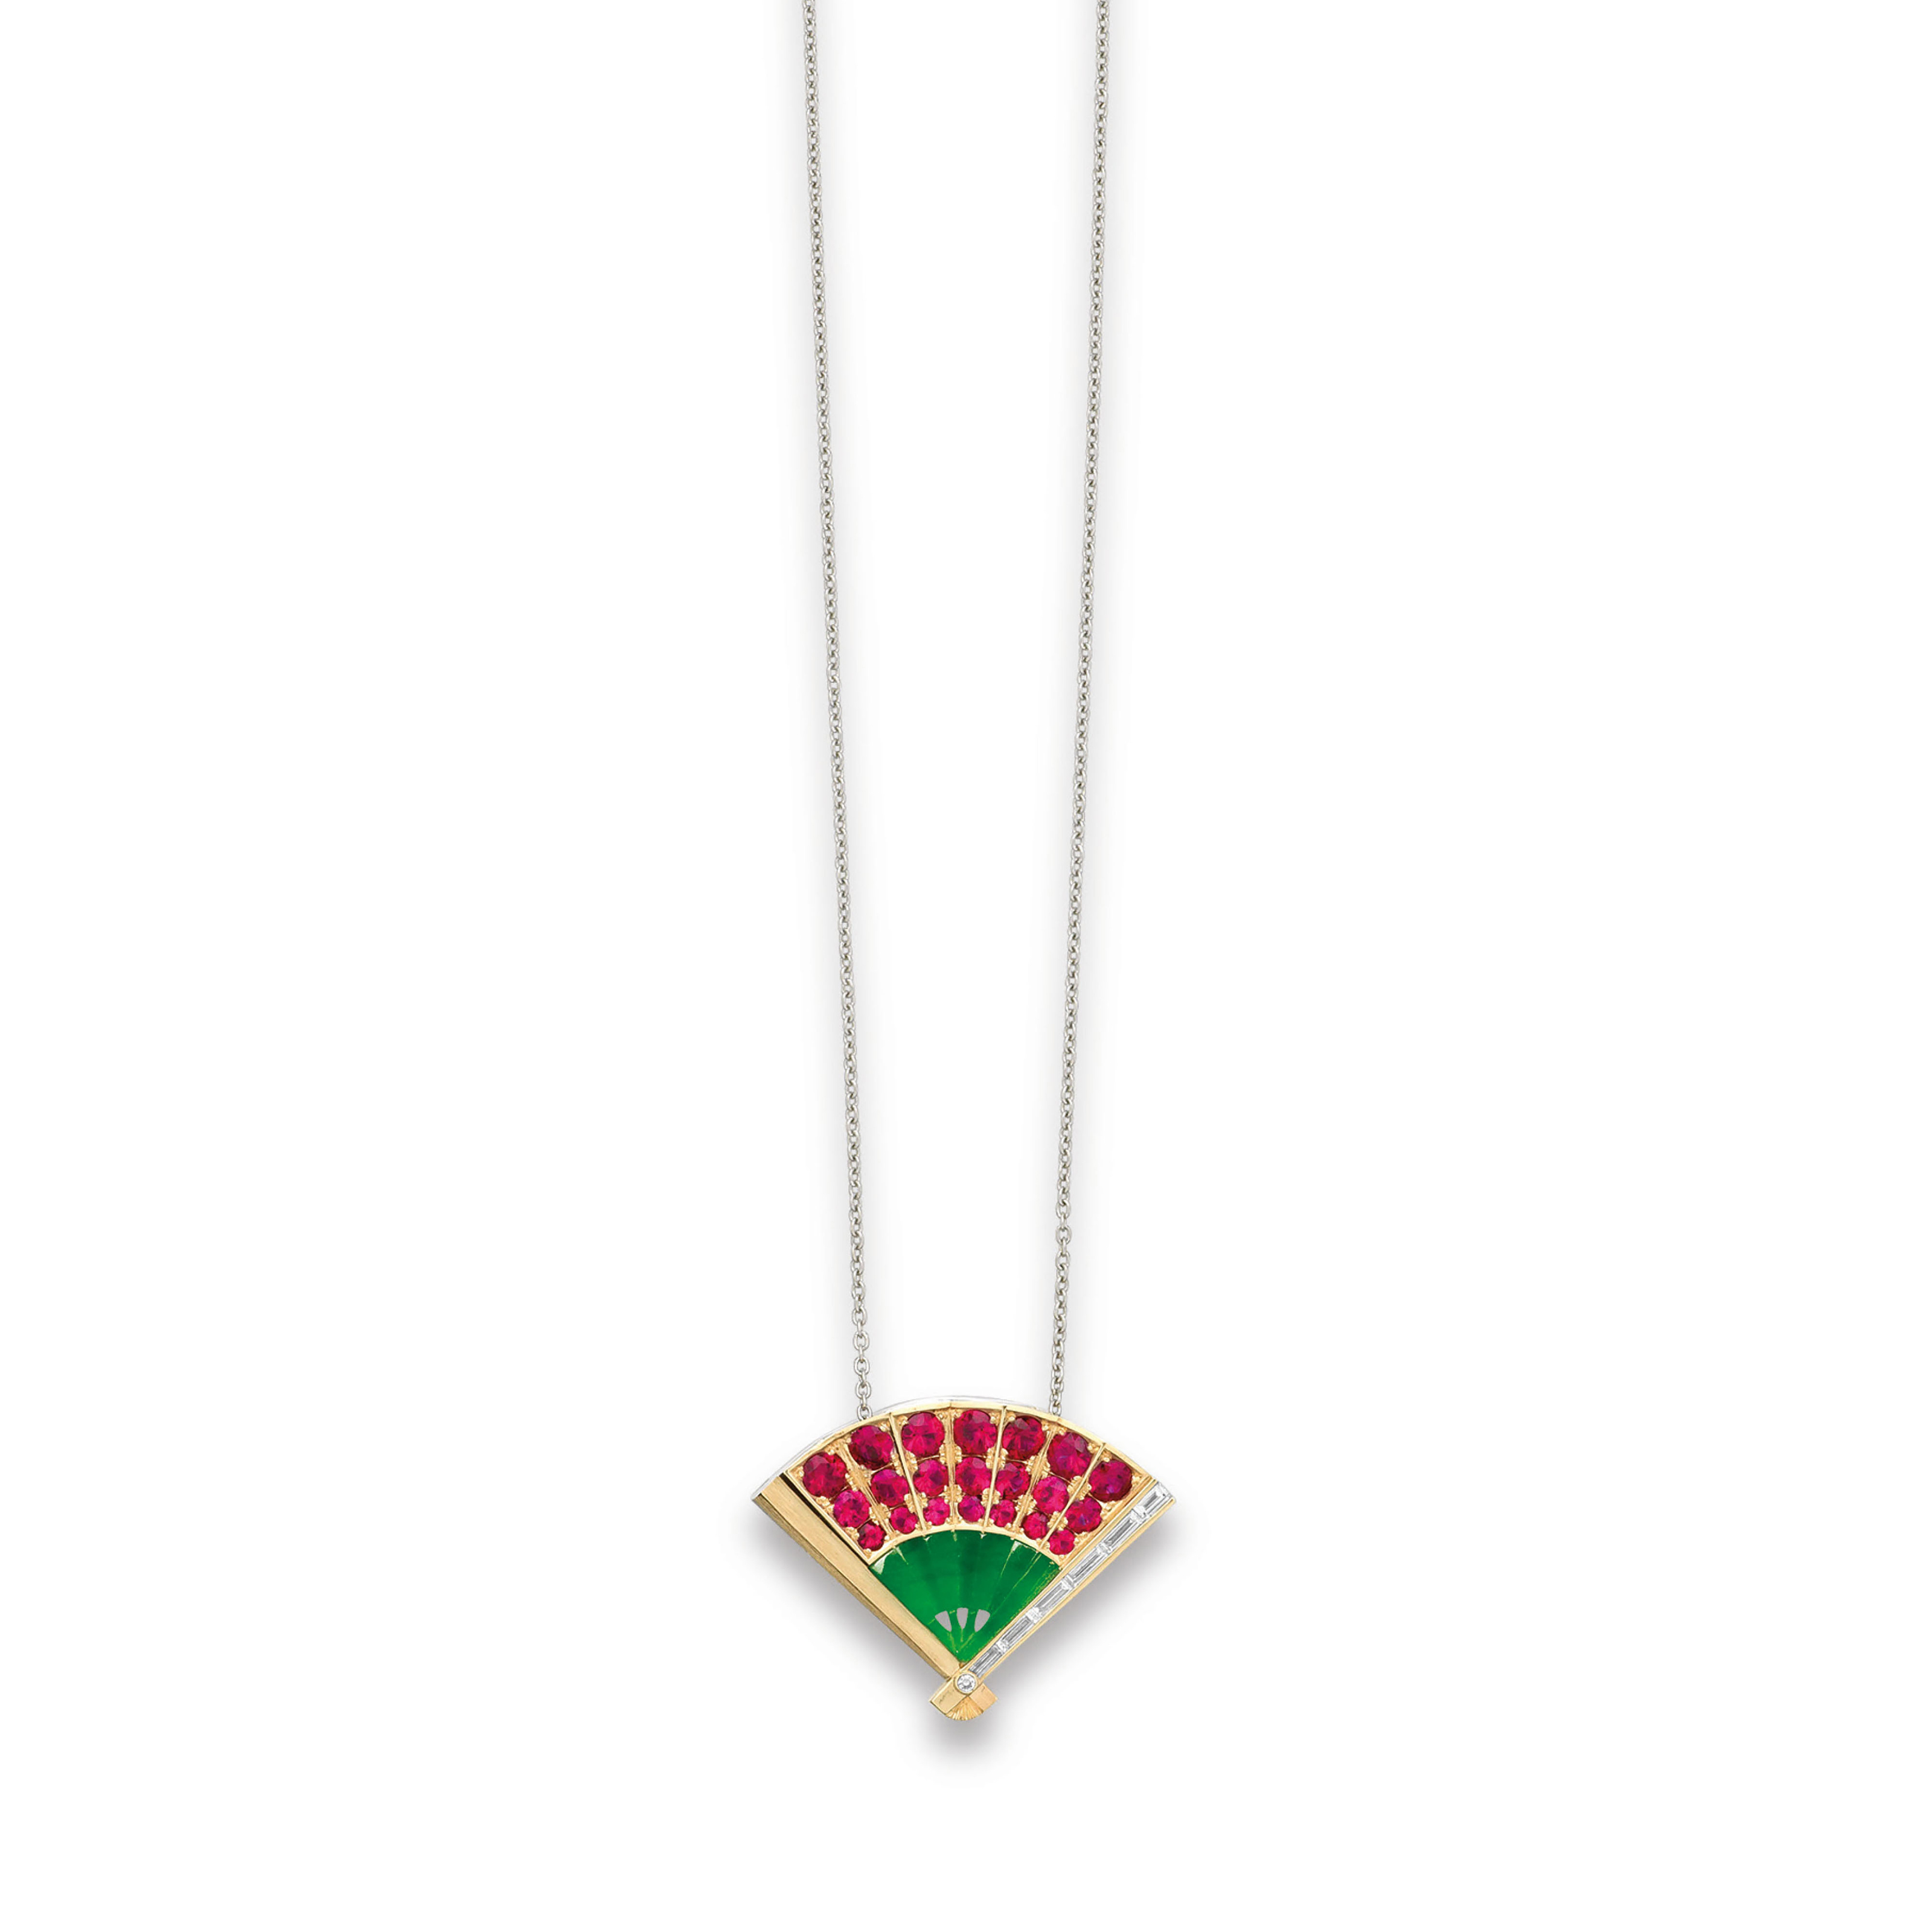 A JADEITE, RUBY AND DIAMOND PENDANT NECKLACE, BY SUWA